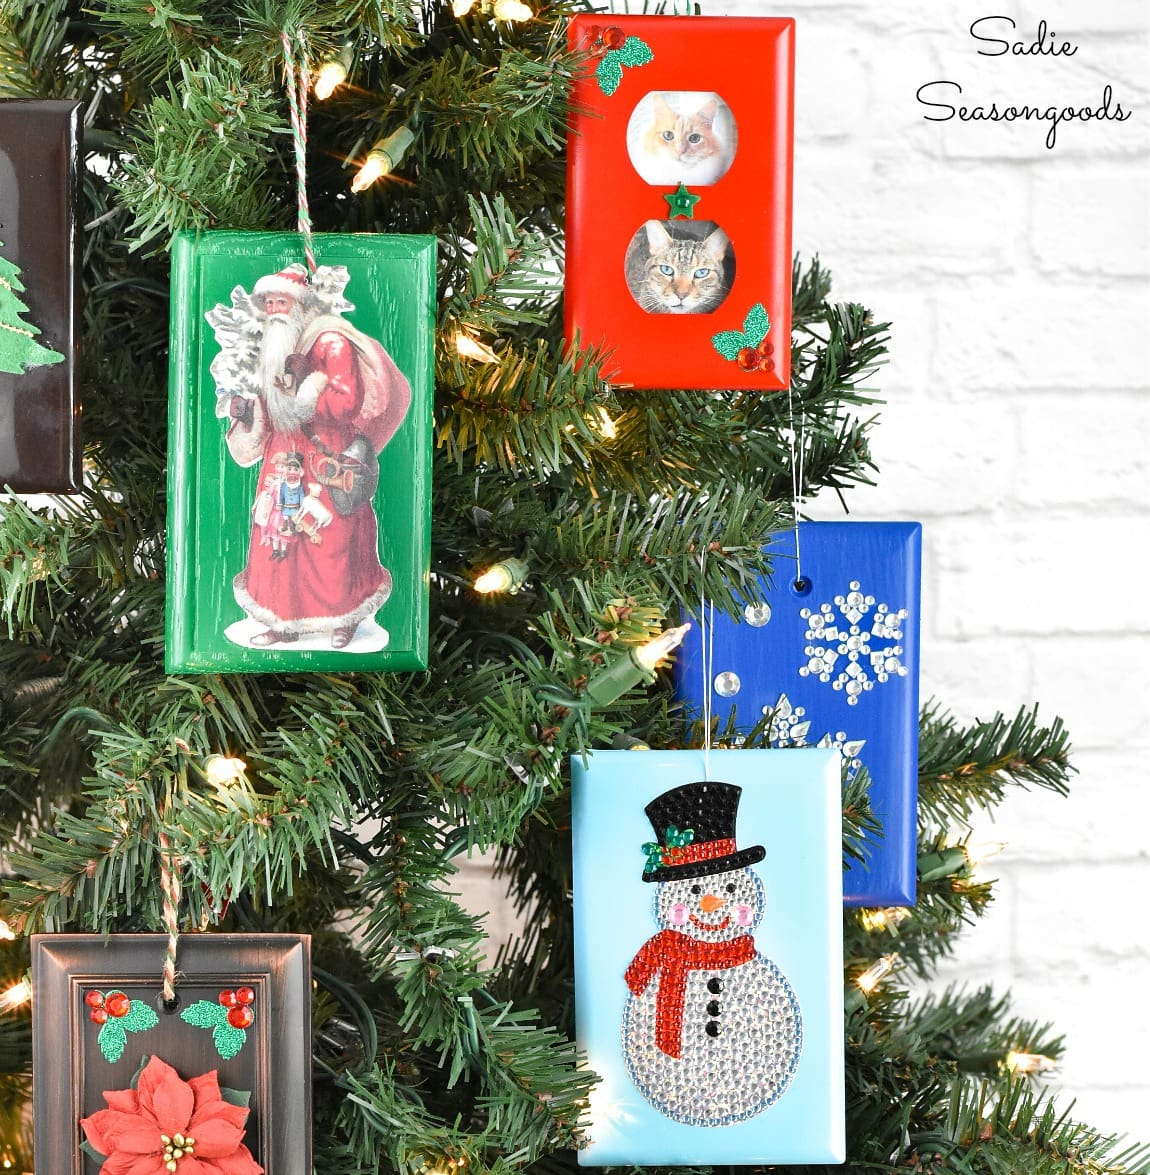 Christmas ornament crafting with switchplate covers